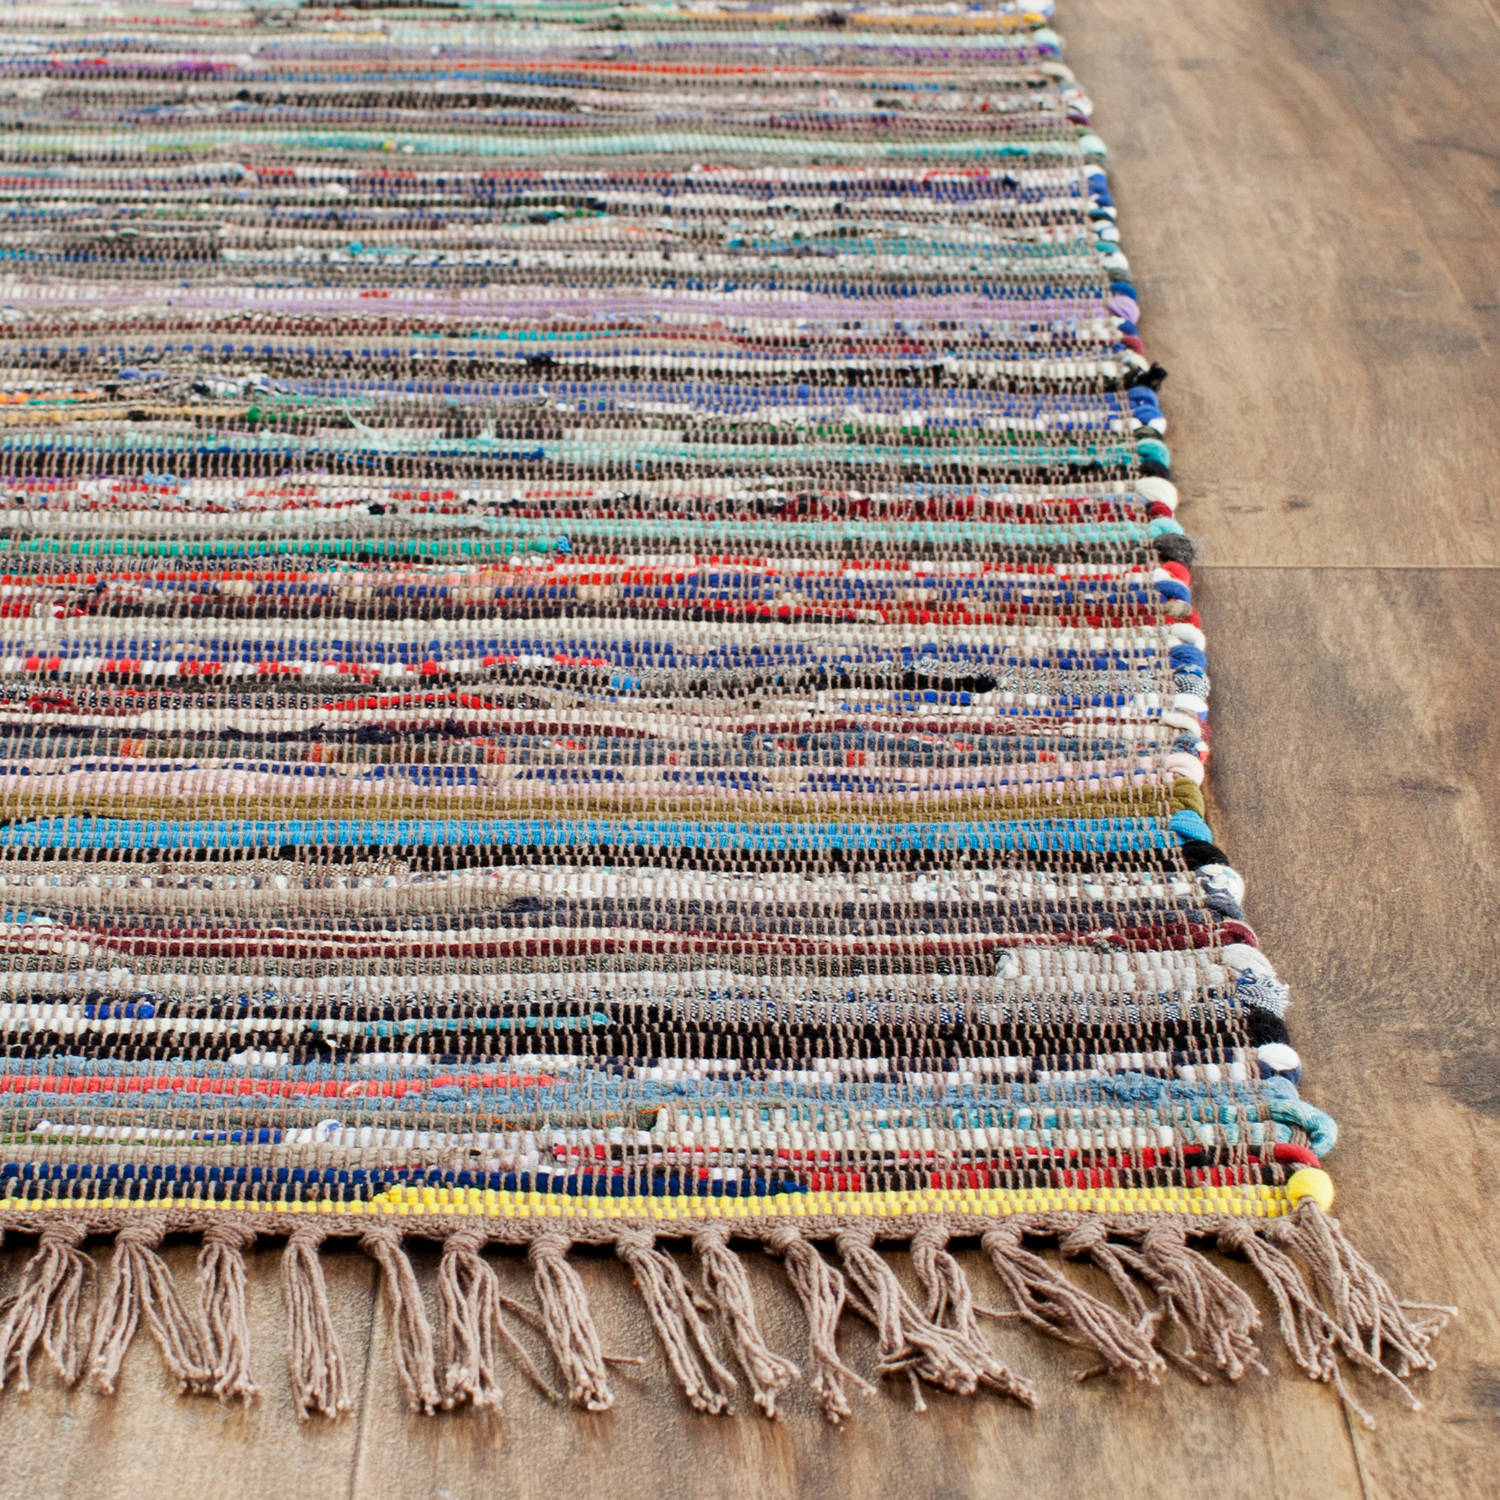 Rag Rugs Walmart Home Decor